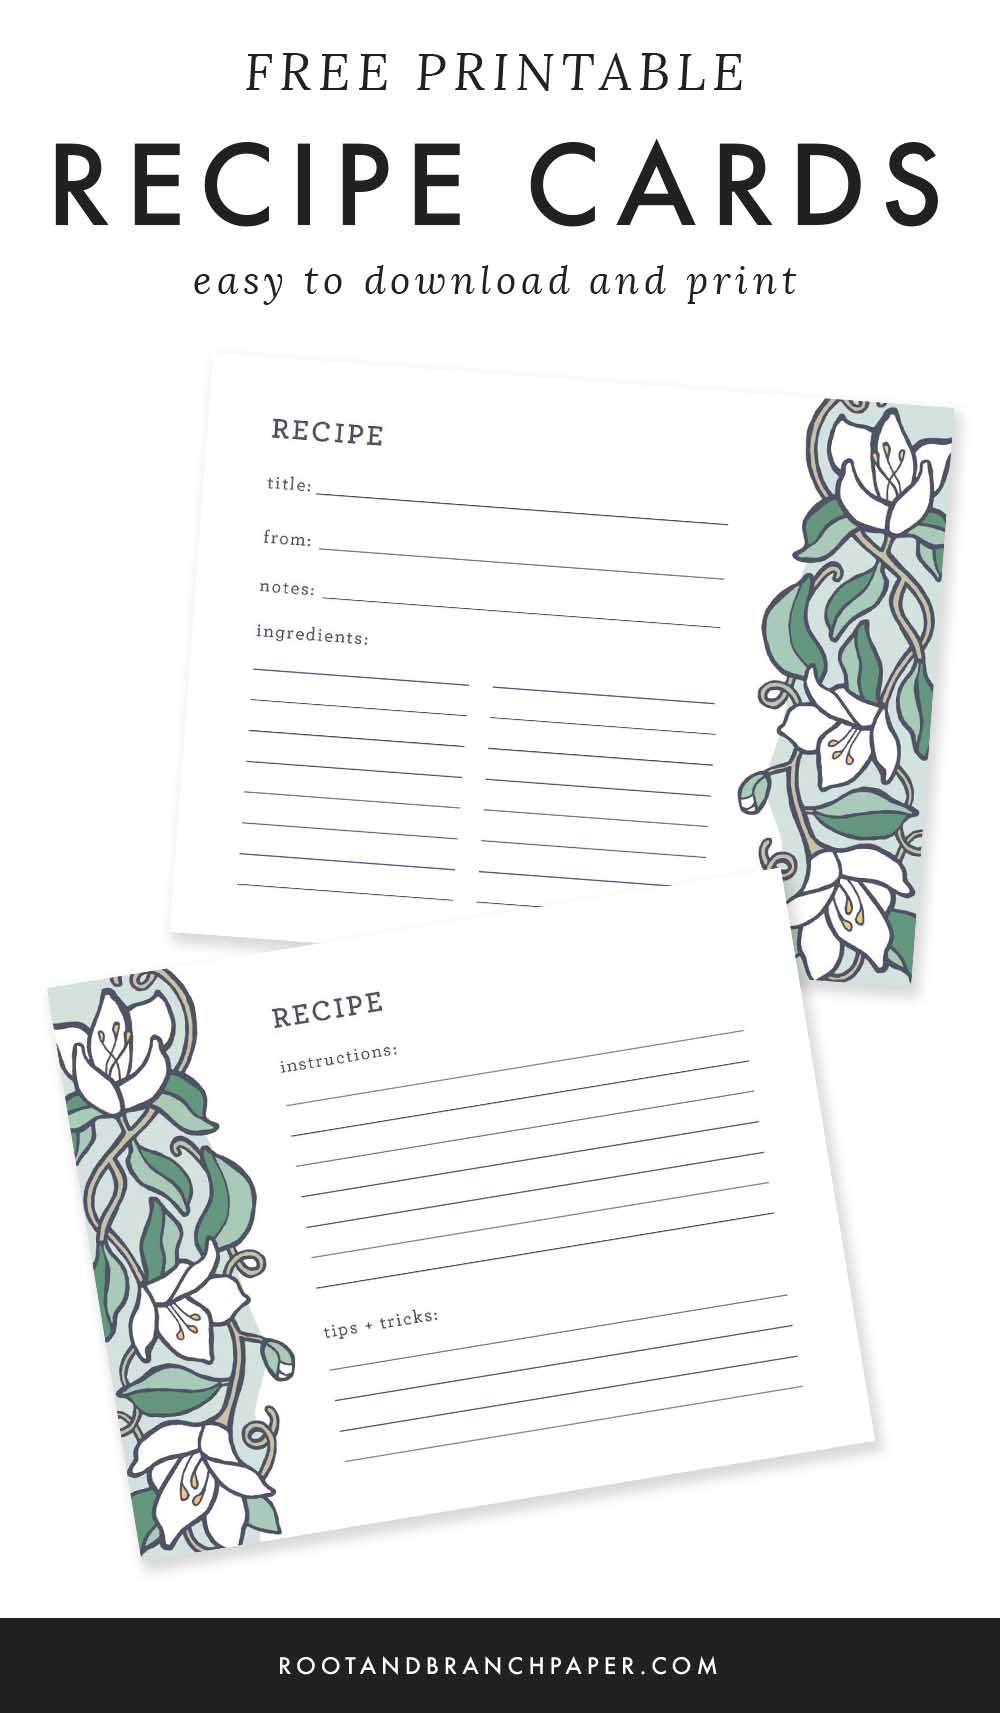 Free Printable Recipe Cards | Recipe Cards for Bridal Shower, Floral Illustrated Recipe Pages, Downloadable Recipe Cards | from the Root & Branch Paper Co. blog